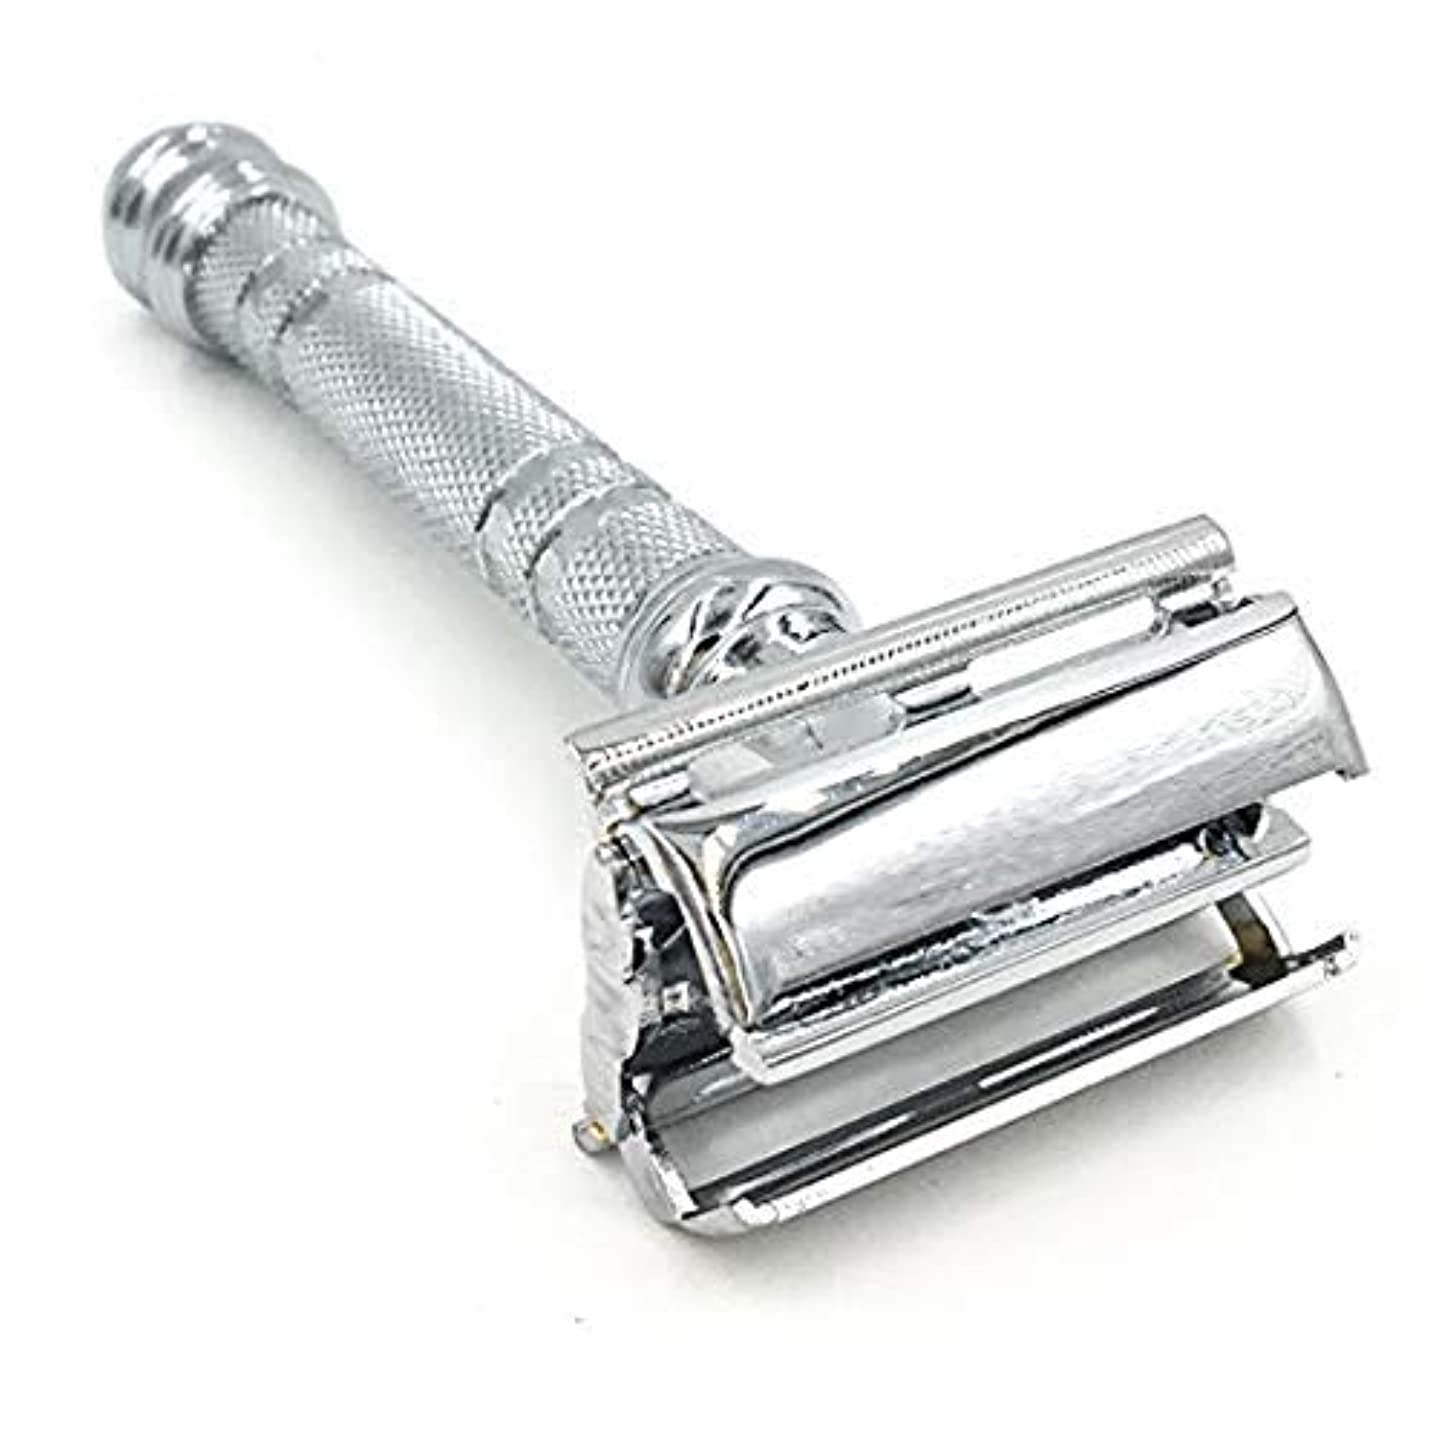 Parker 66R Butterfly Open Double Edge Safety Razor - Super Heavyweight - Brand New for 2016 by Parker Safety Razor